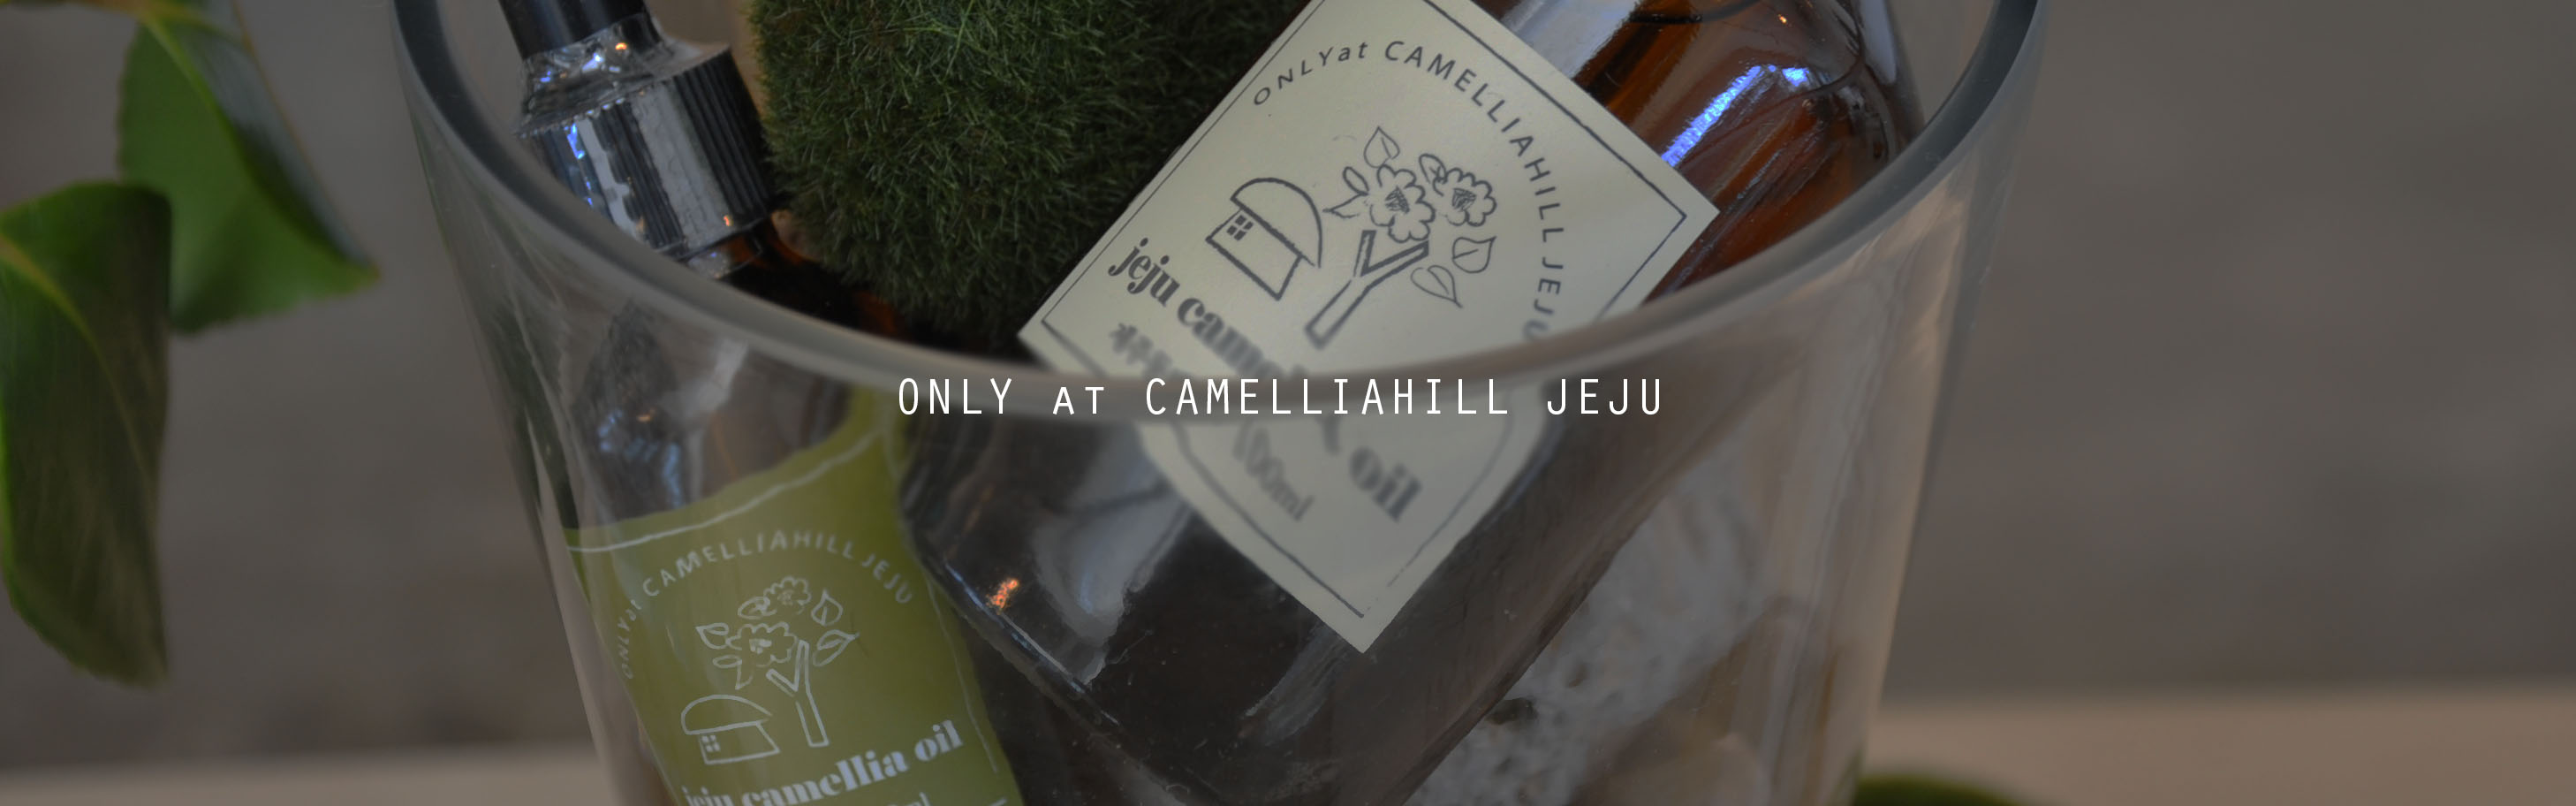 only at camelliahill jeju